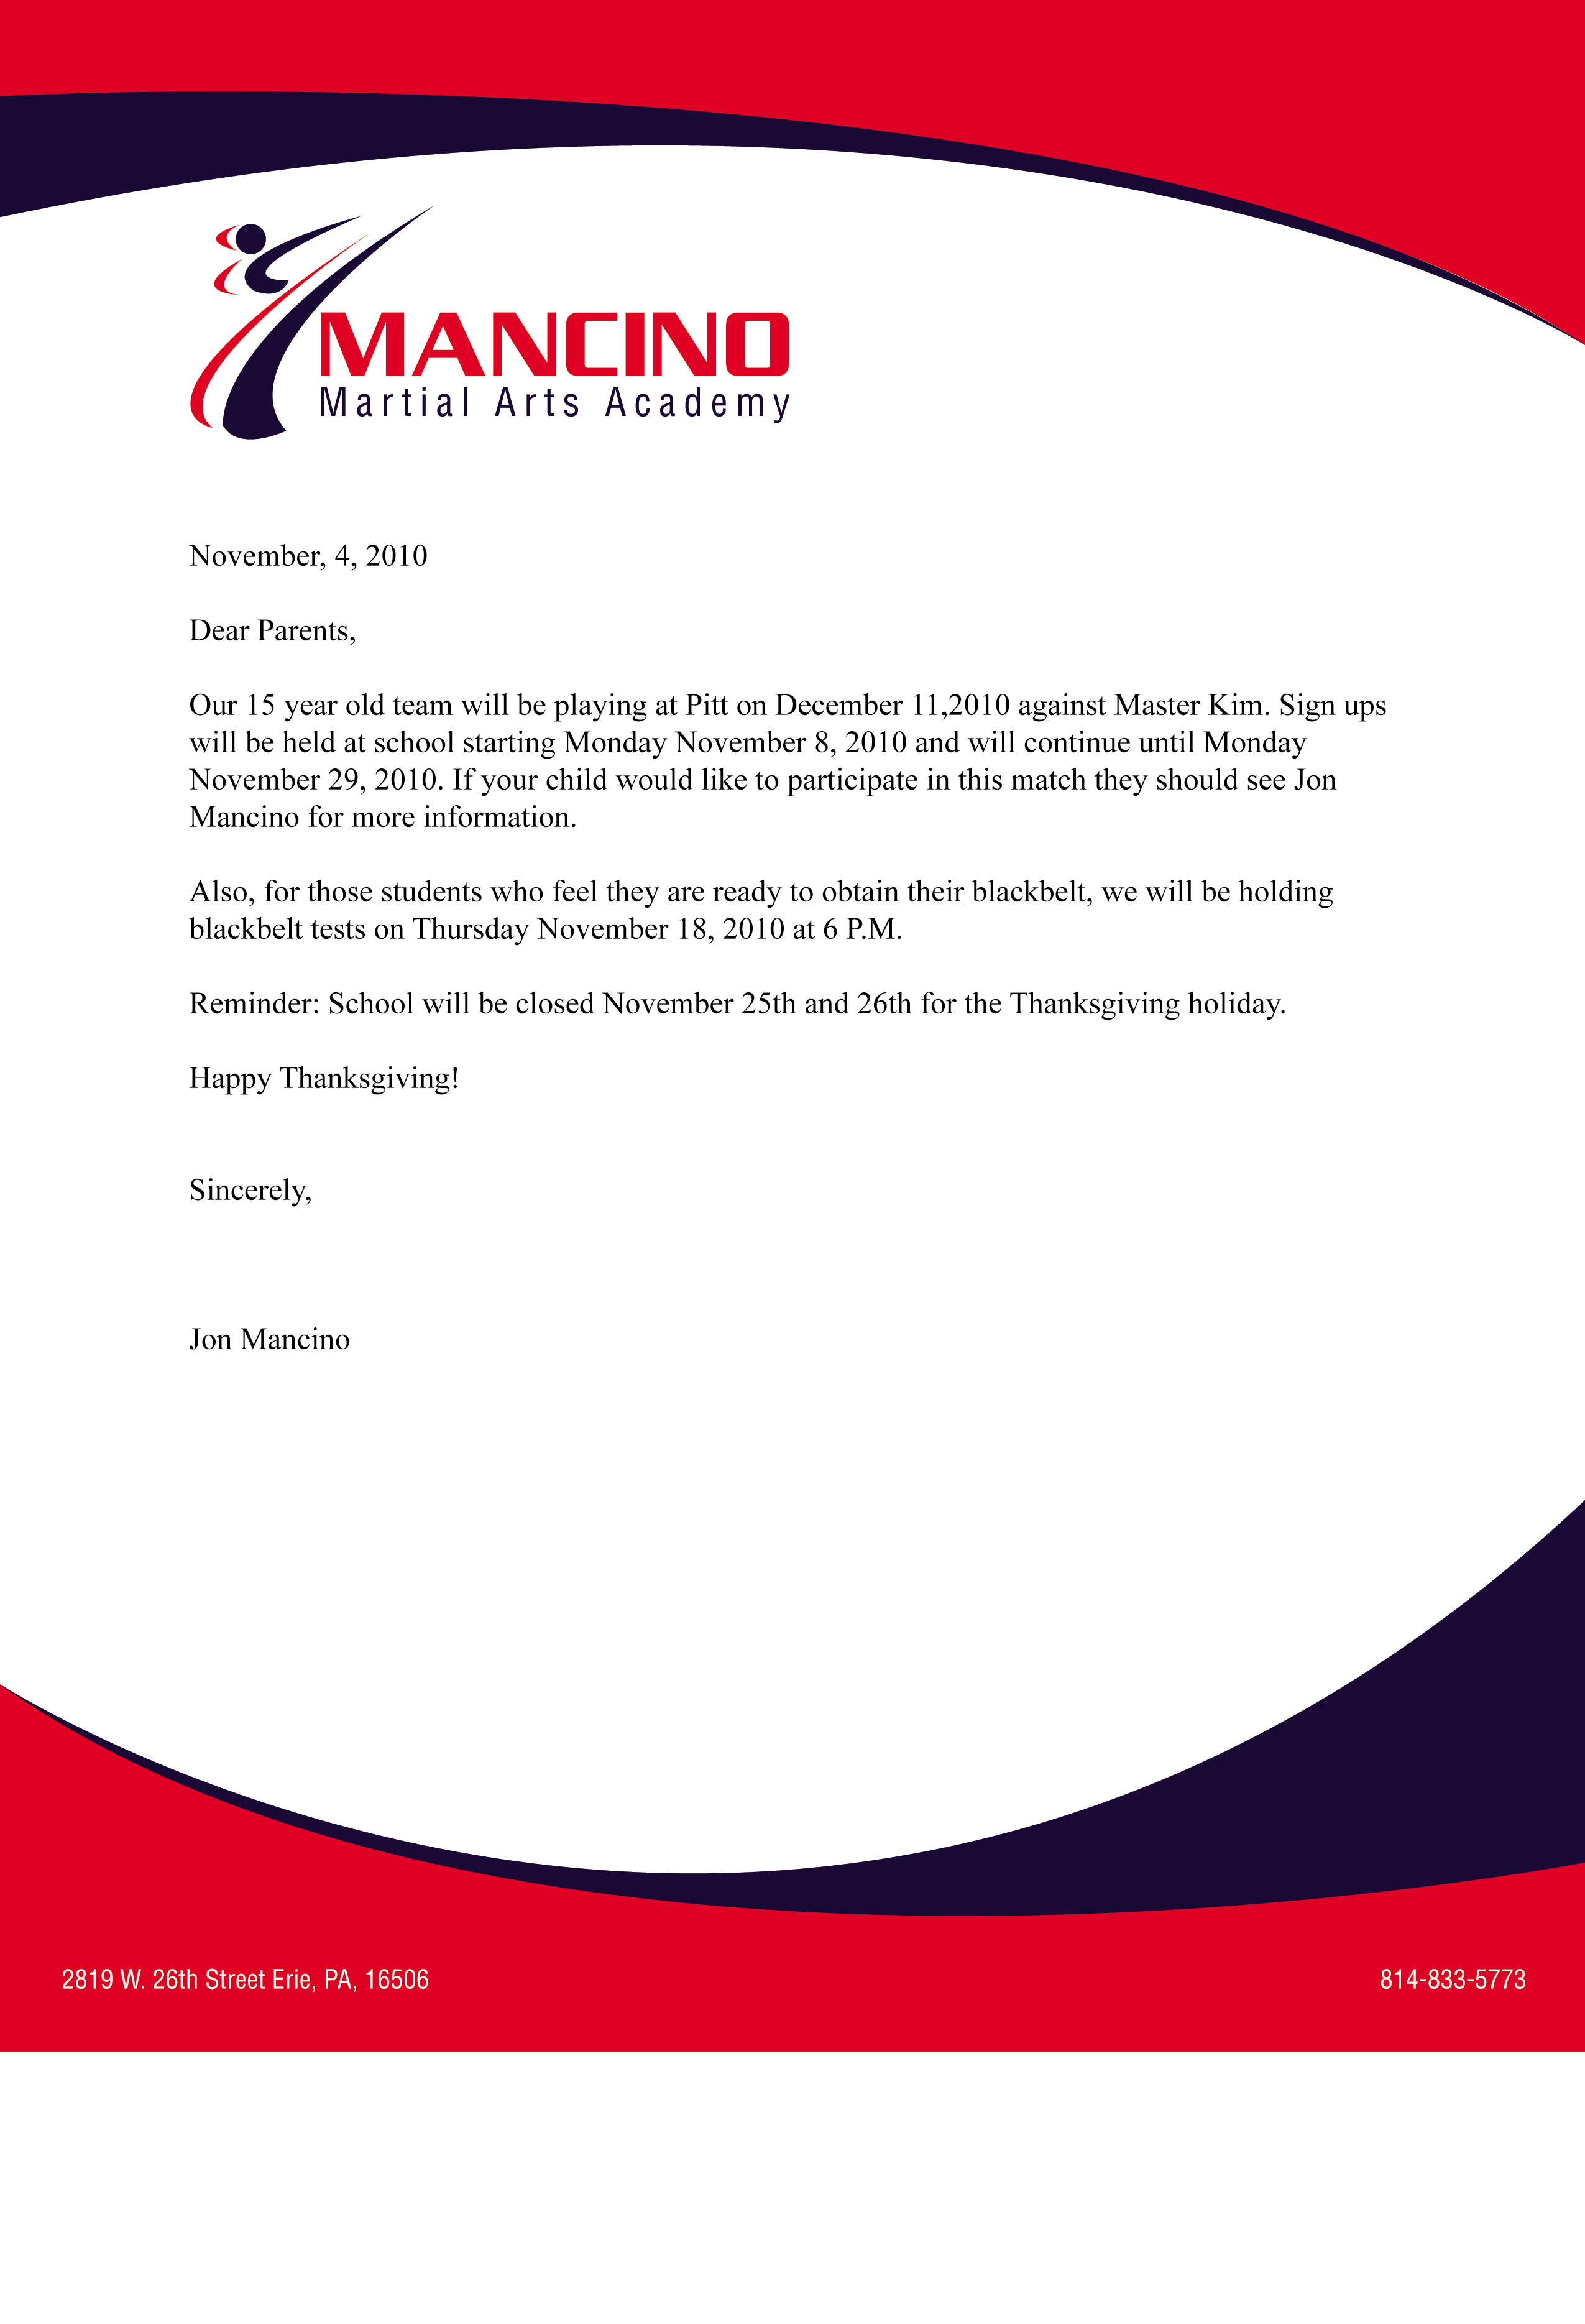 Business Letter On Company Letter Head